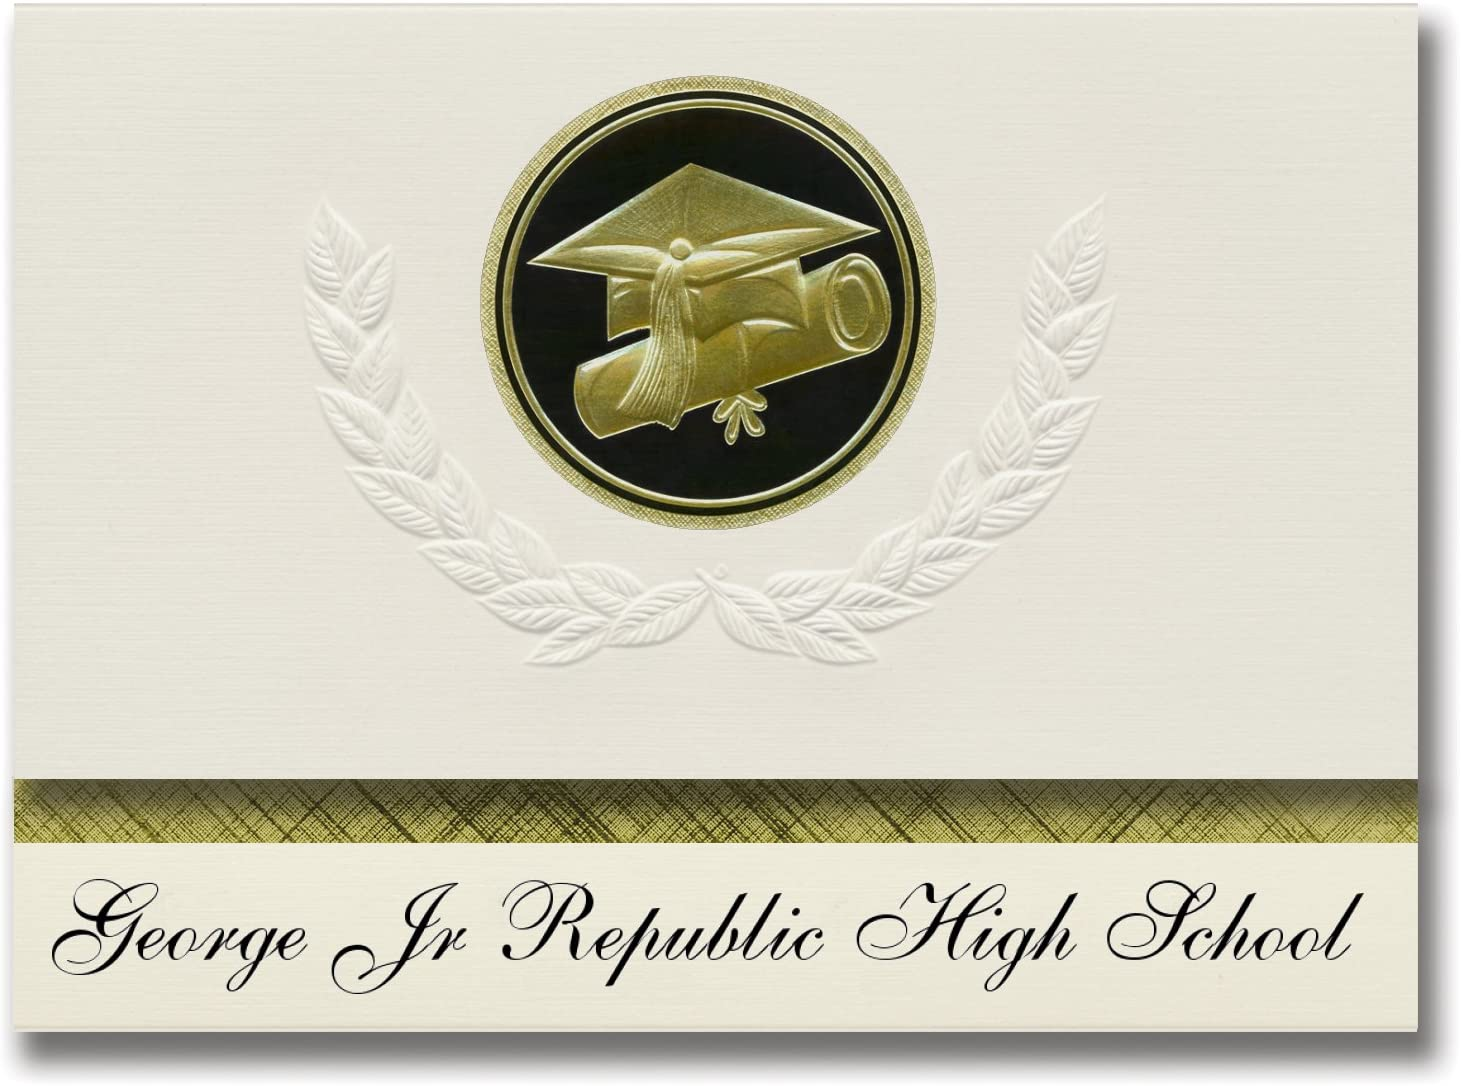 Signature Announcements George Jr Republic High School (Grove City, PA) Graduation Announcements, Presidential style, Elite package of 25 Cap & Diploma Seal Black & Gold